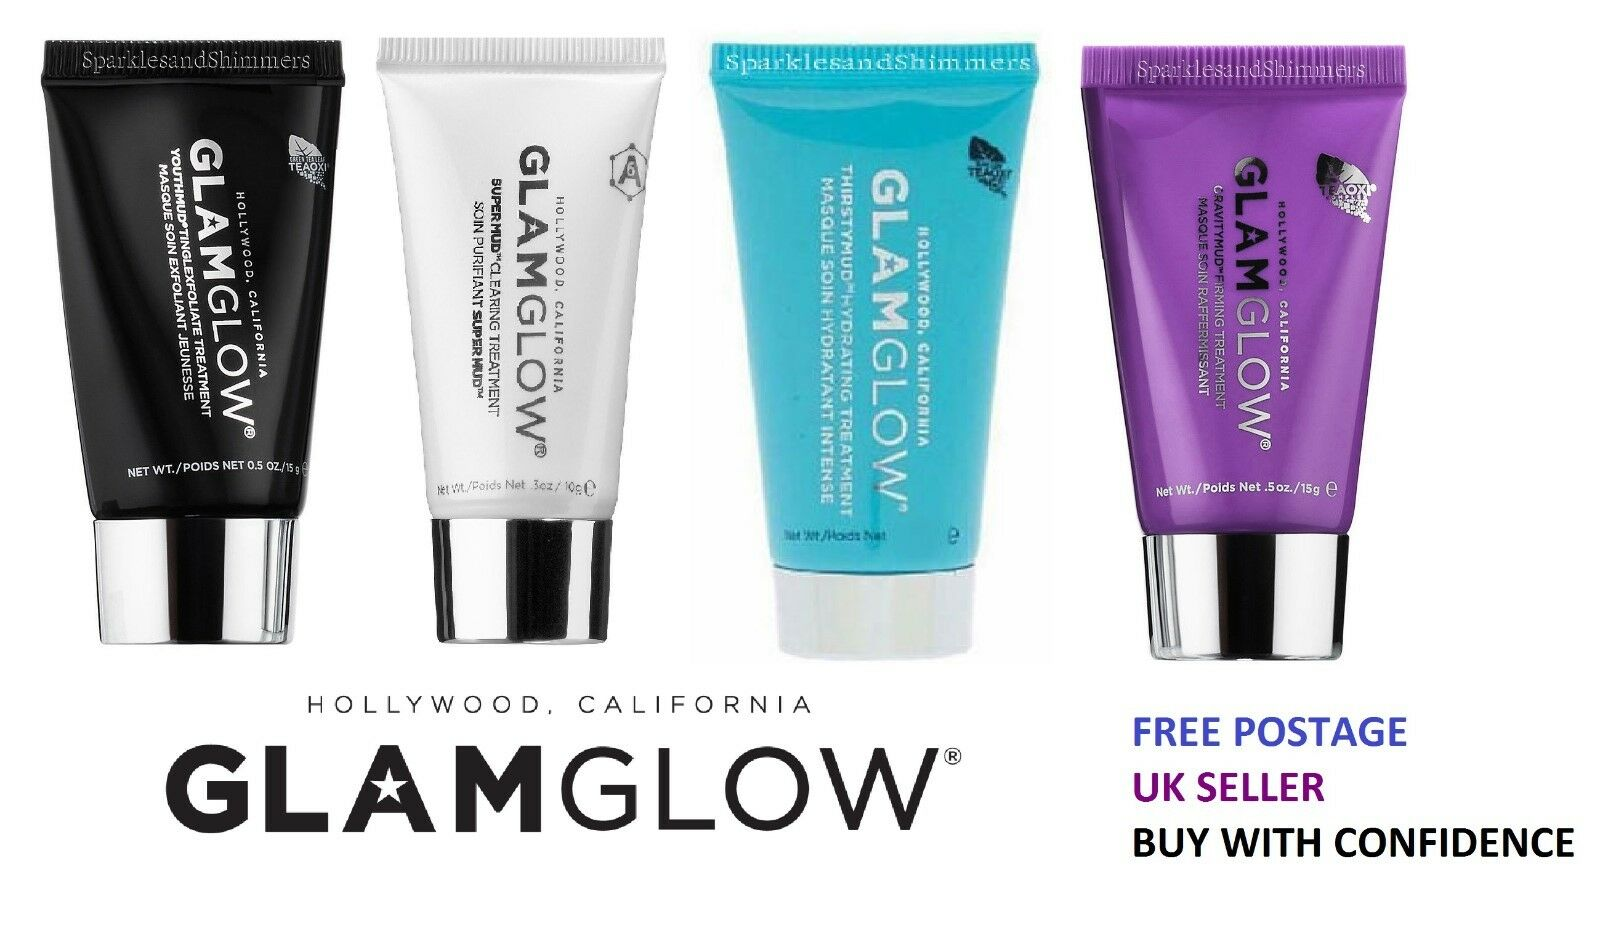 Glamglow Mask Choice Of Treatment Glam Glow Clearing Cleaning Supermud 50 Gr 1 1free Shipping